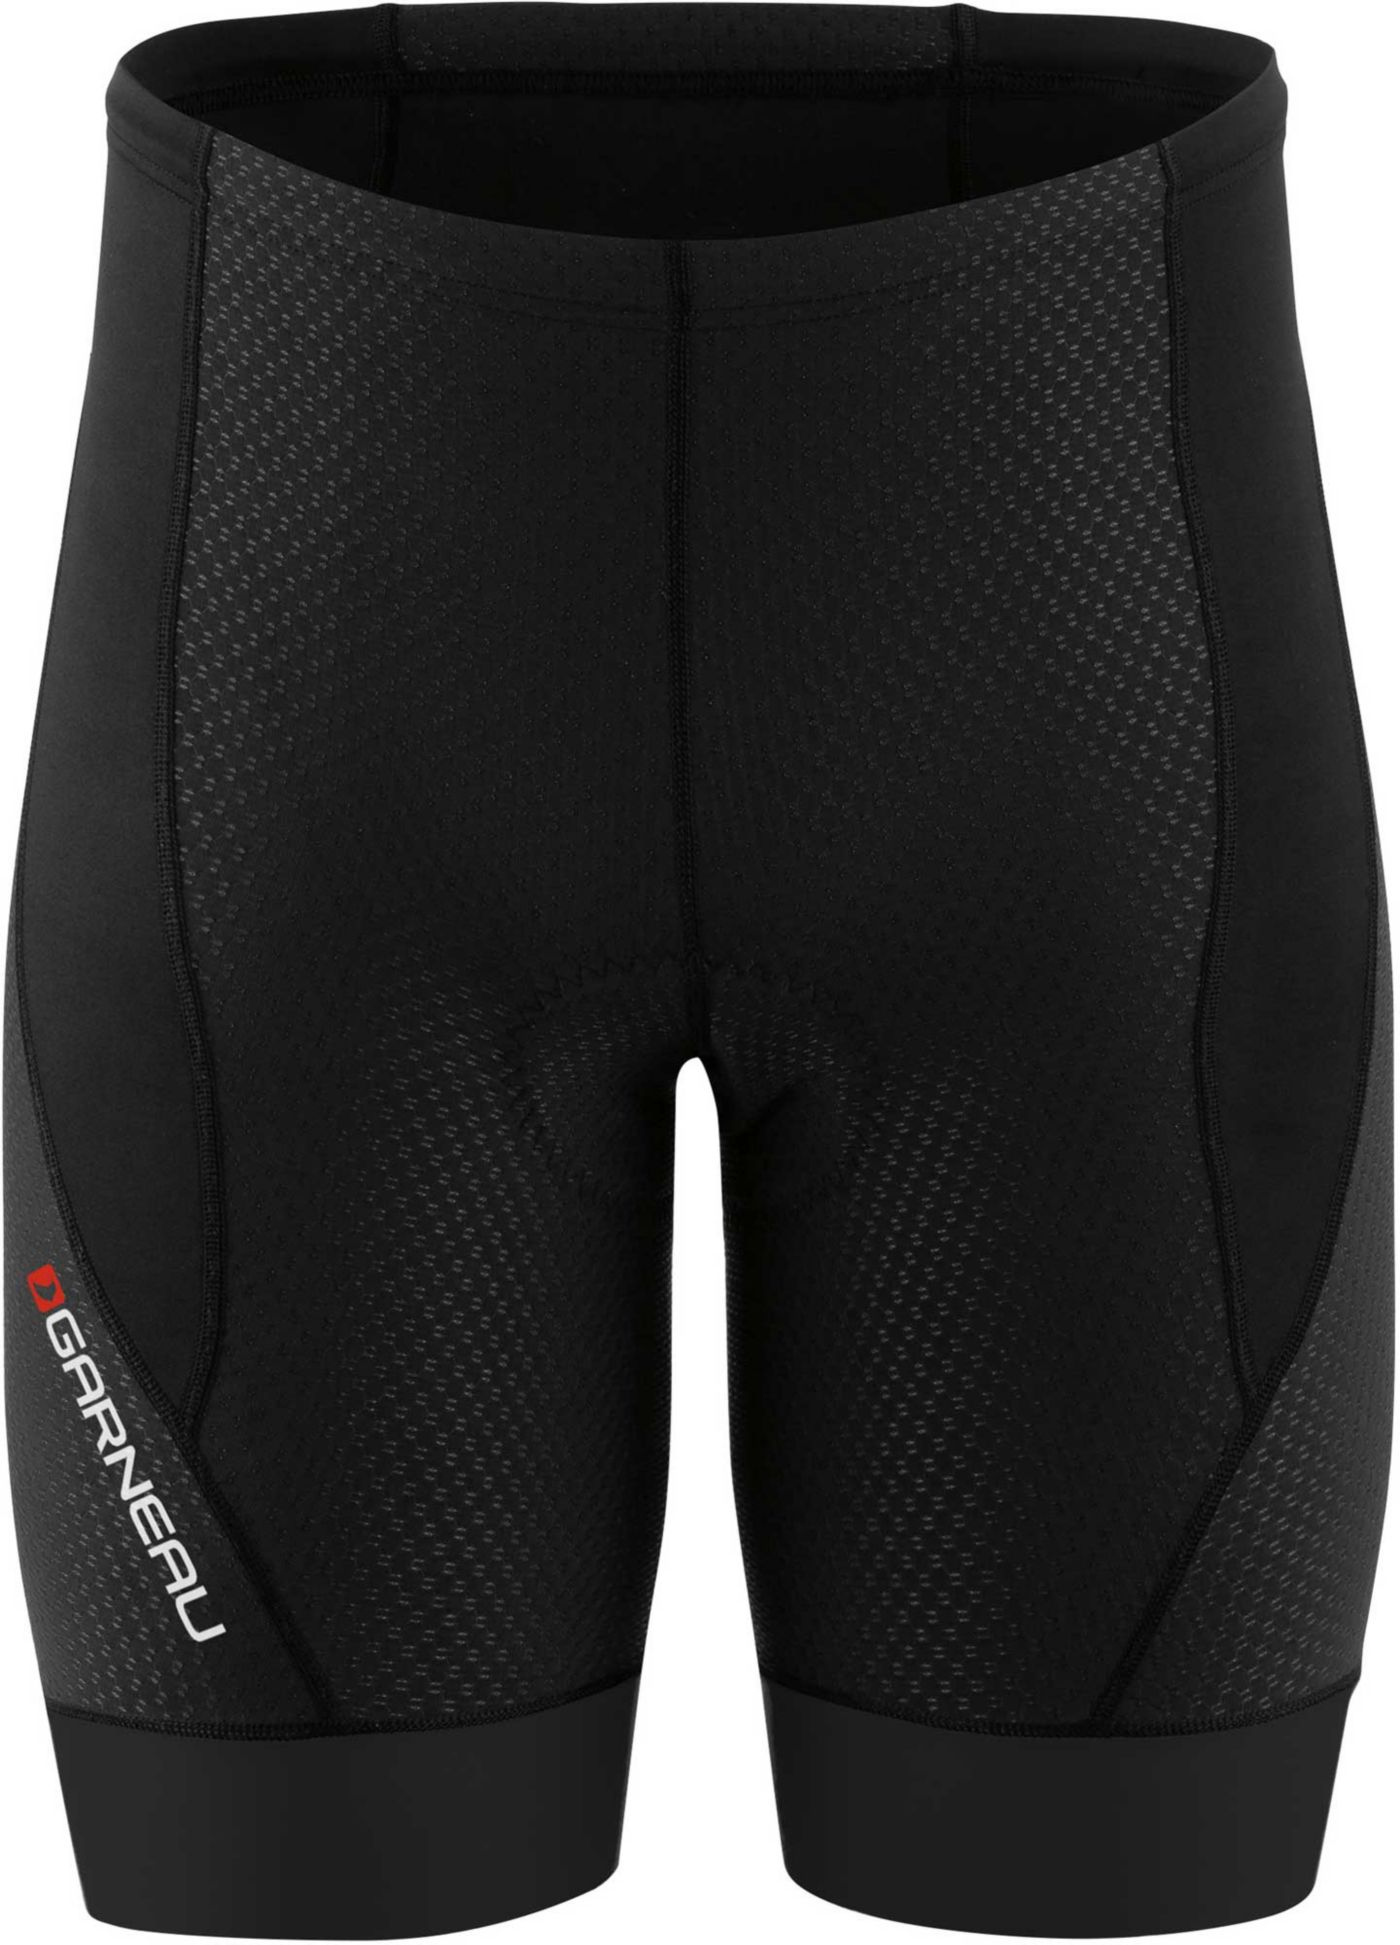 Louis Garneau Men's CB Carbon 2 Cycling Shorts